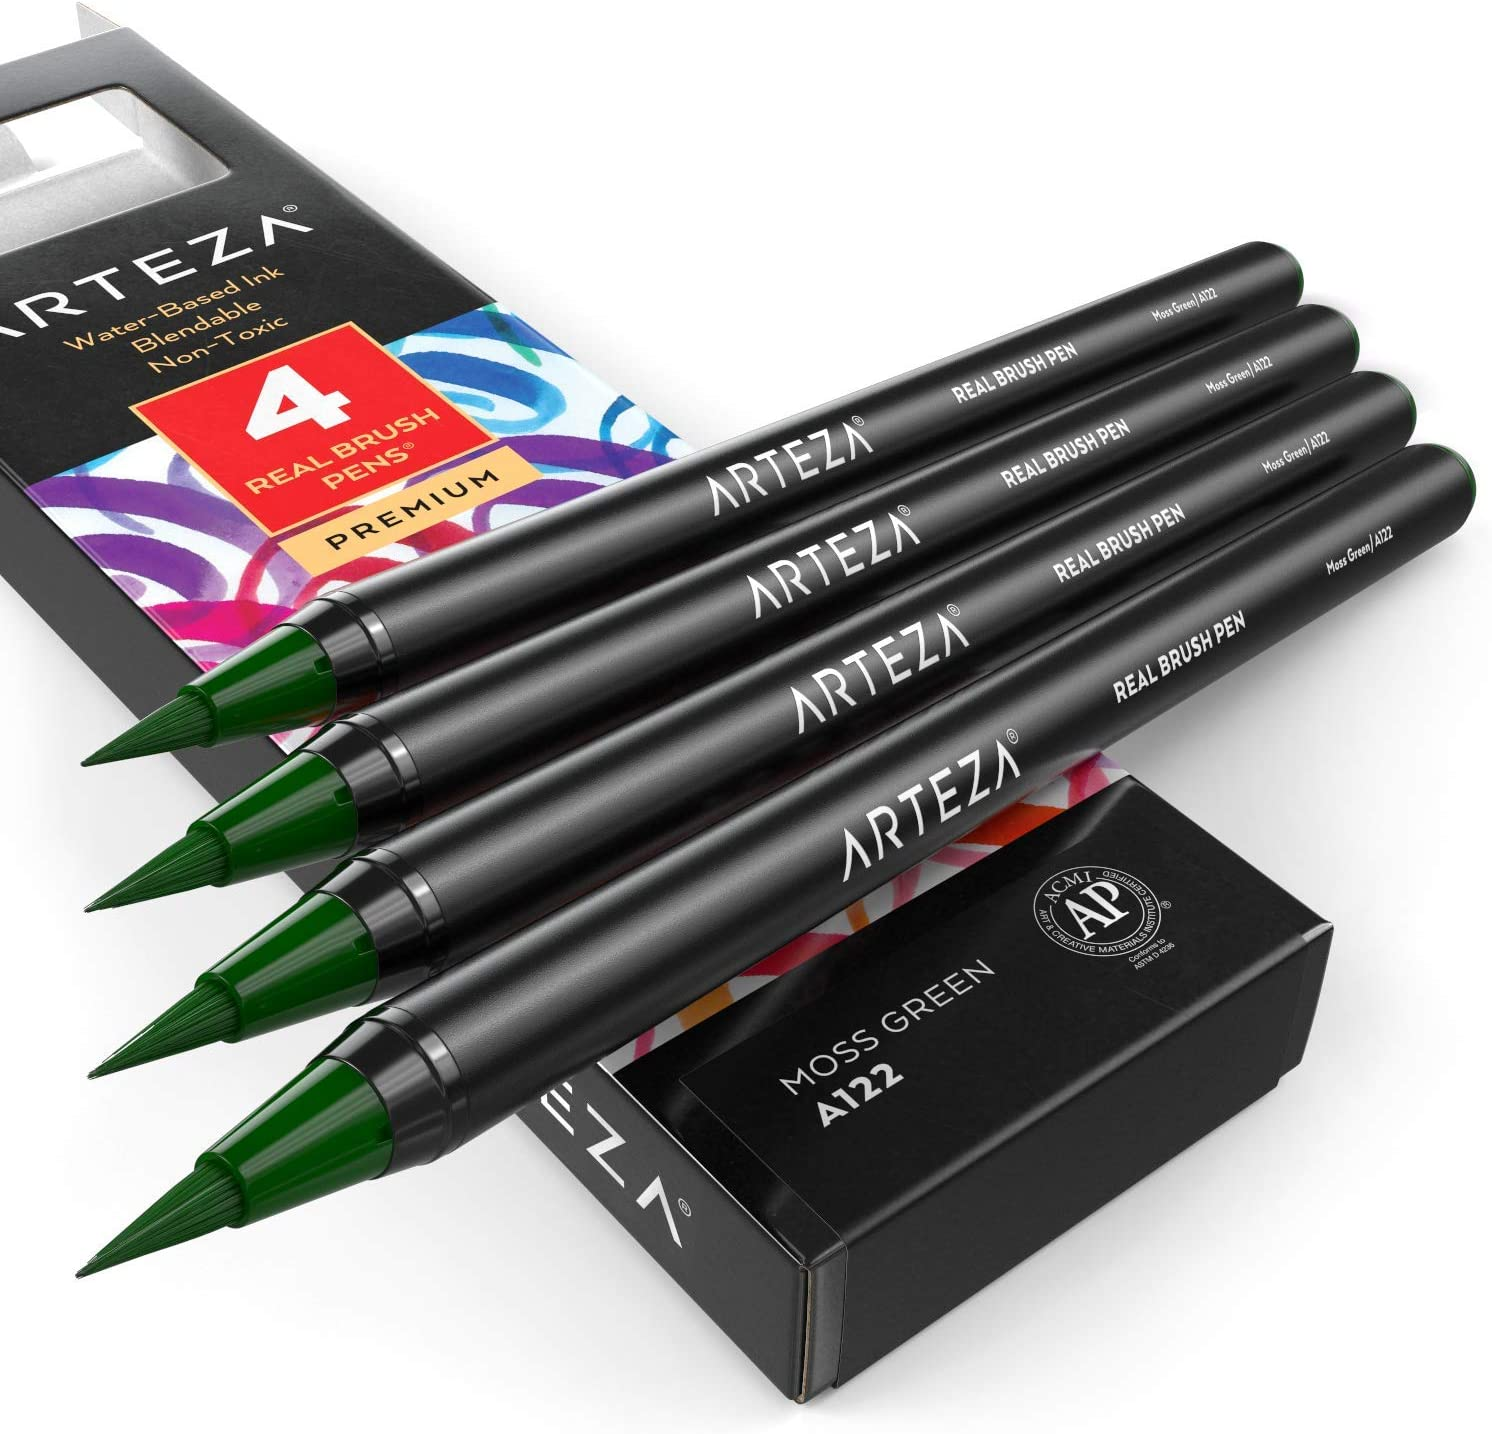 Arteza Real Brush Pens, A122 Moss Green, Pack of 4, Watercolor Pens with Nylon Brush Tips, Art Supplies for Dry-Brush Painting, Sketching, Coloring & Calligraphy